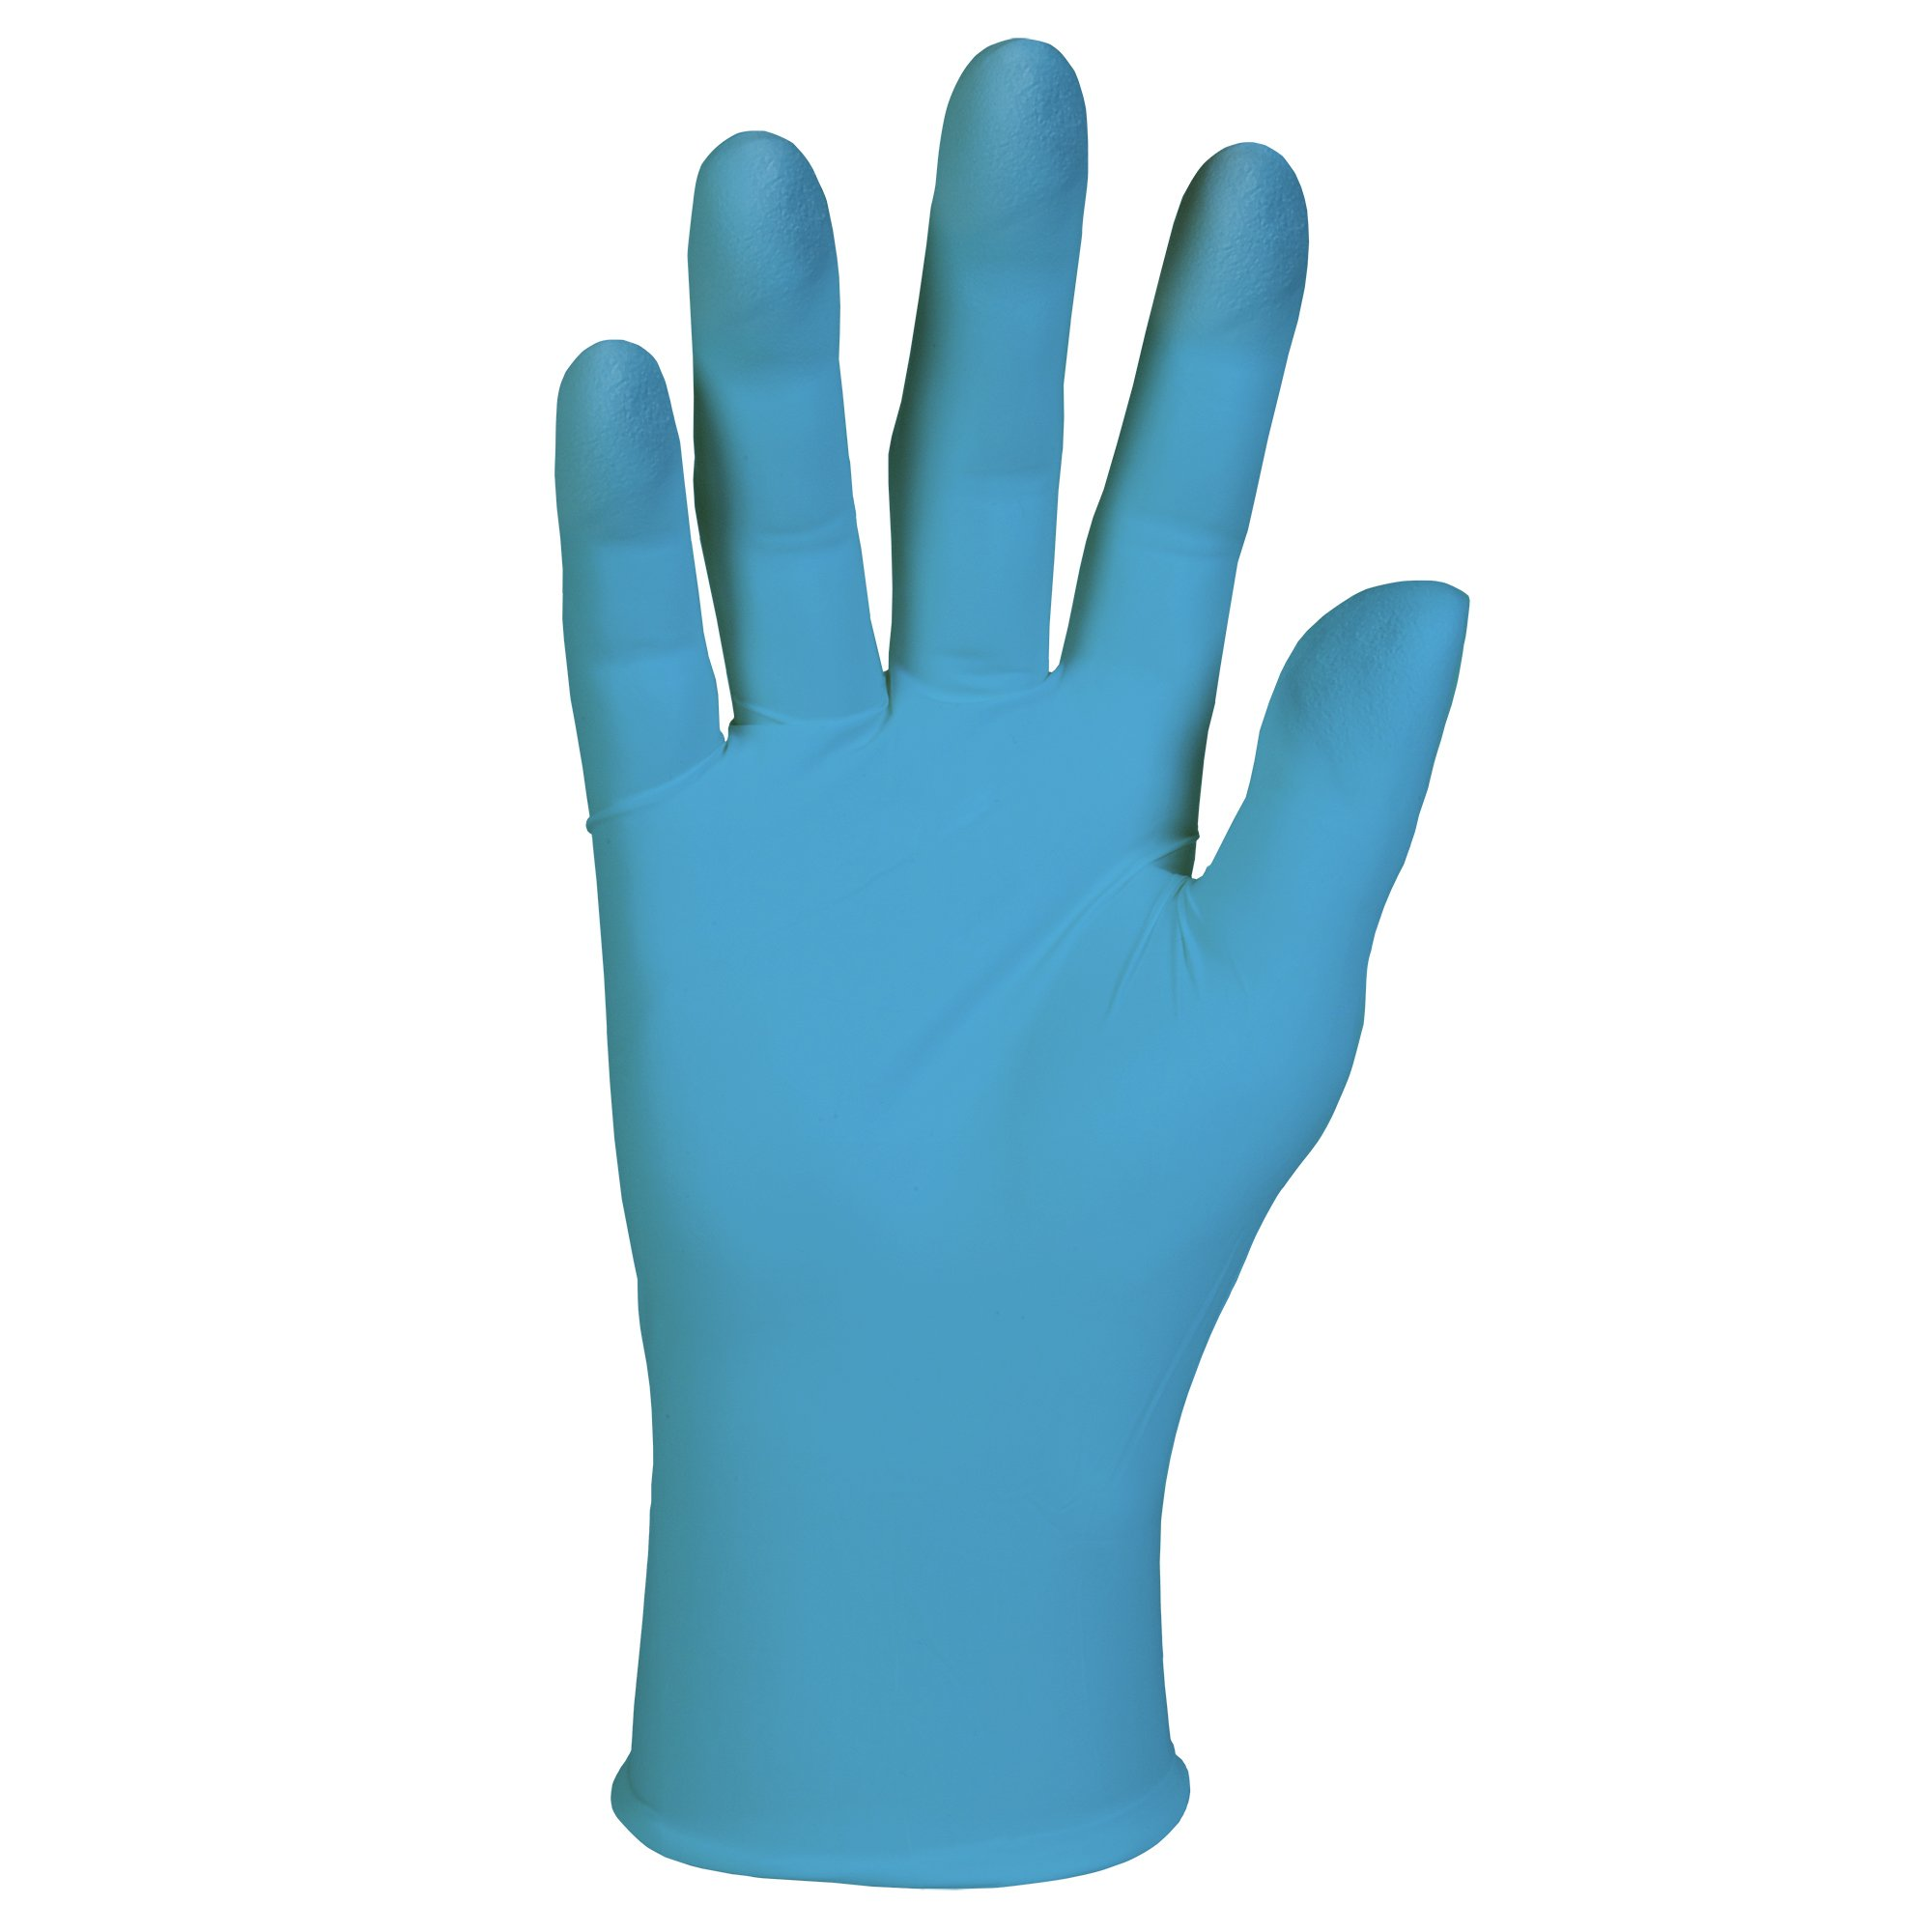 Kleenguard G10 Blue Nitrile Gloves (41078), Large, Powder-Free, 6 Mil, Ambidextrous, Thin Mil, 20 / Bag